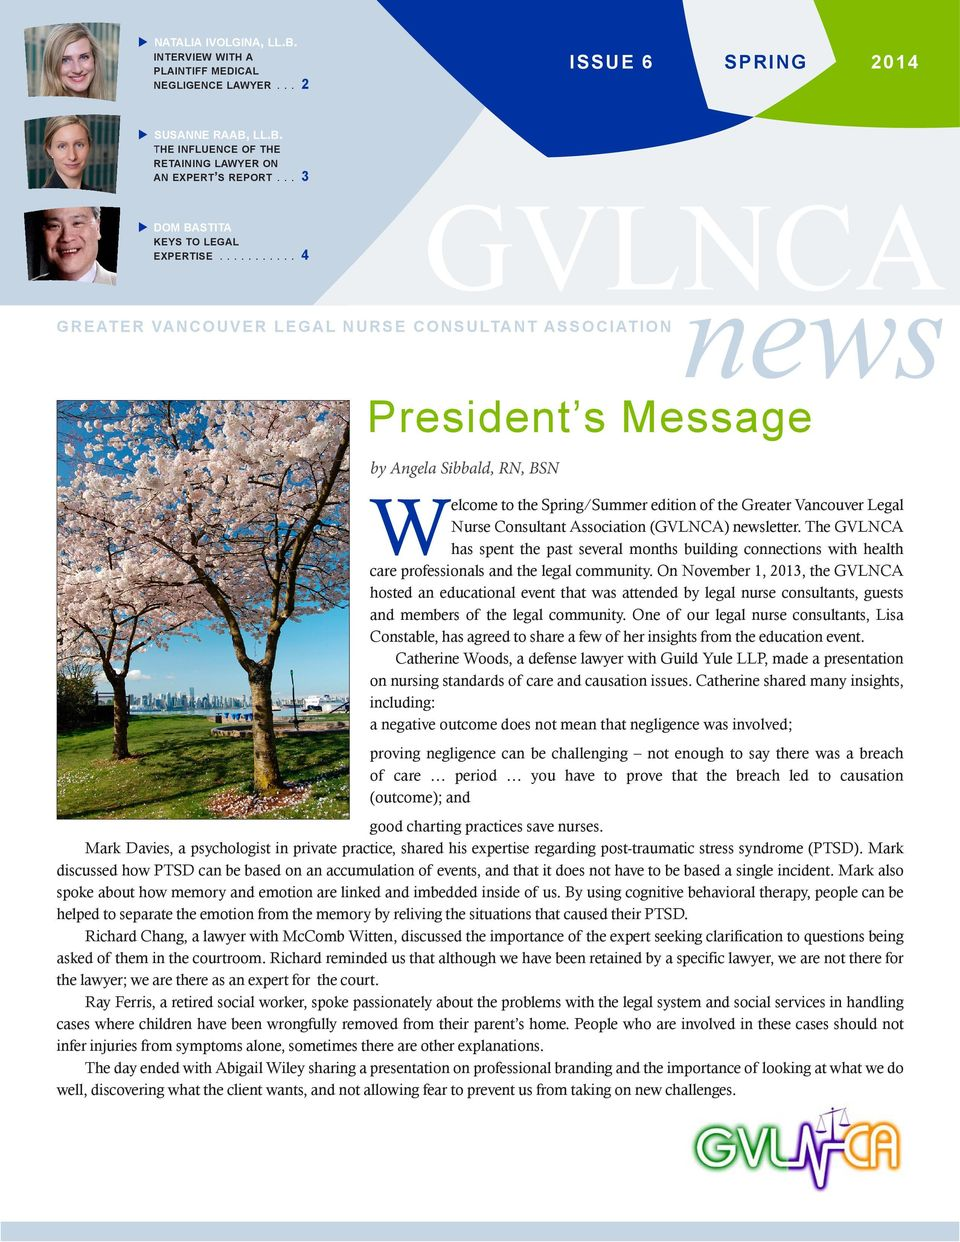 .......... 4 GREATER VANCOUVER LEGAL NURSE CONSULTANT ASSOCIATION GVLNCA President s Message by Angela Sibbald, RN, BSN news Welcome to the Spring/Summer edition of the Greater Vancouver Legal Nurse